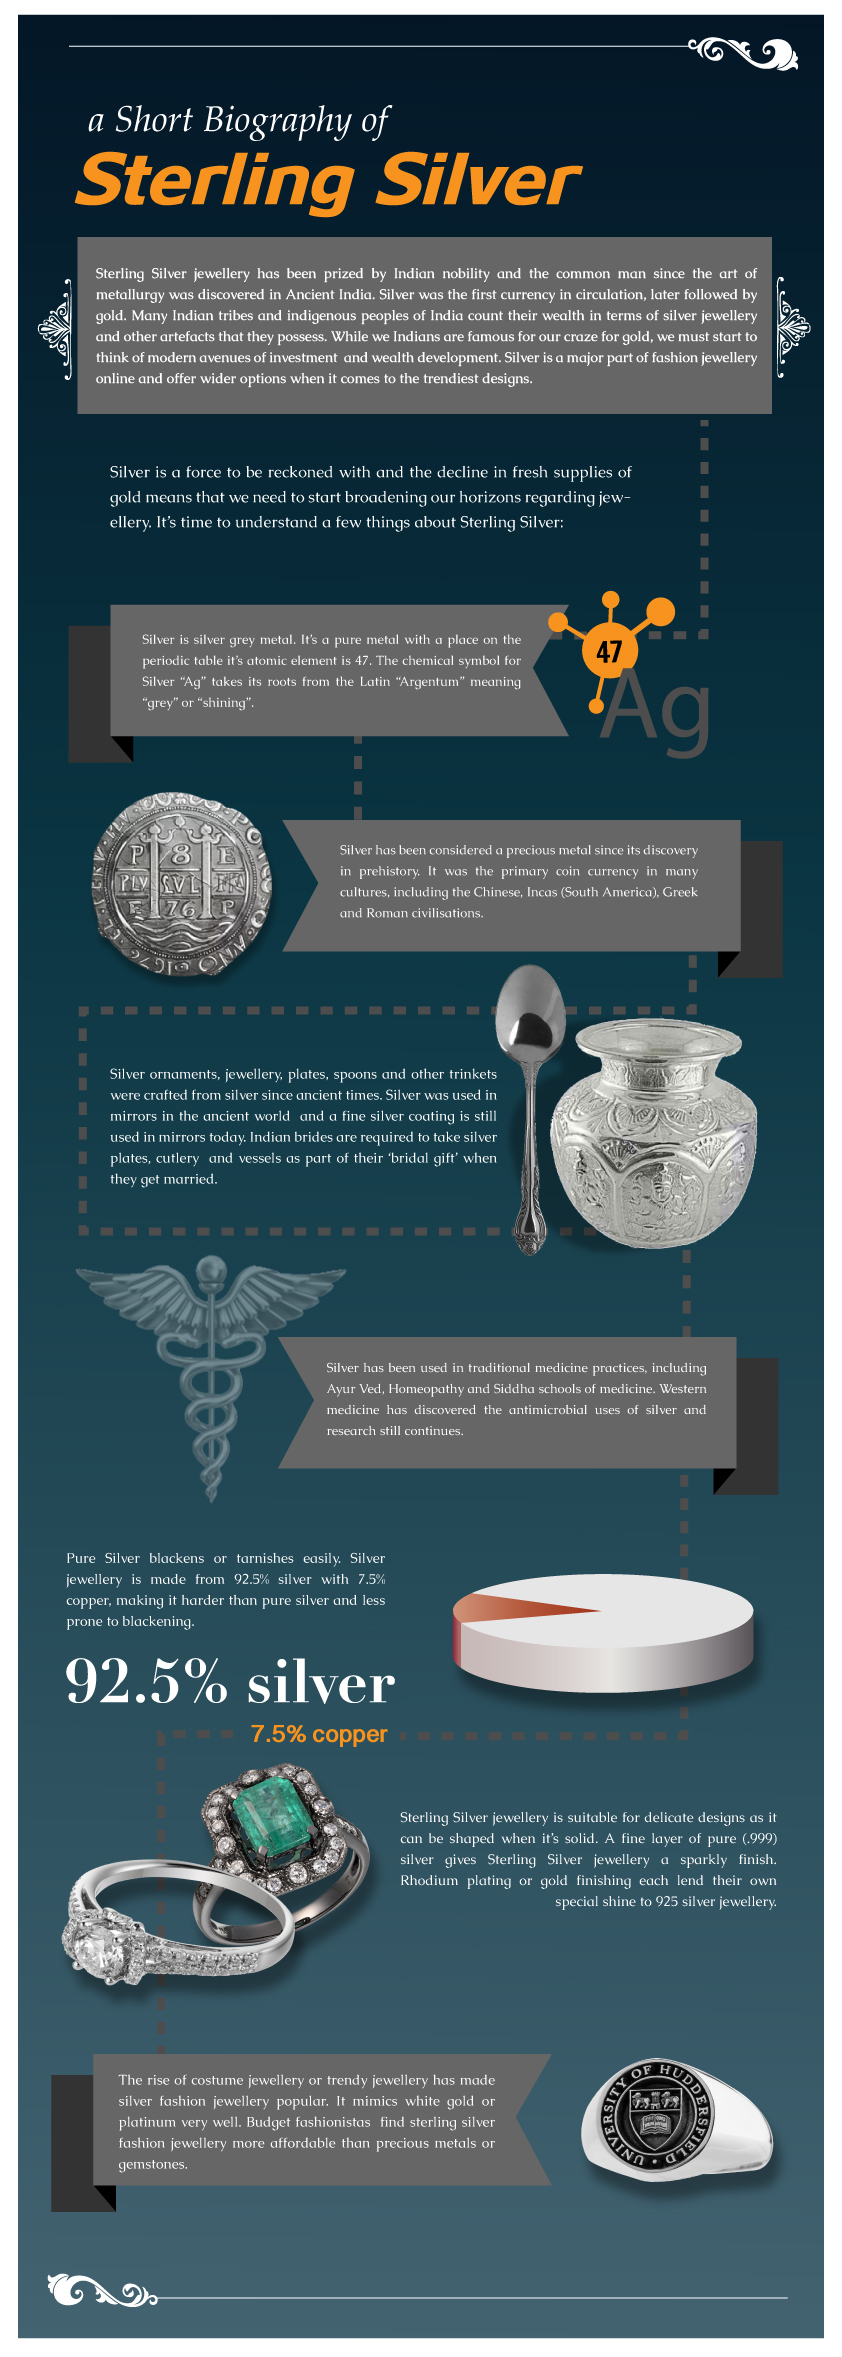 A-Short-Biography-of-Sterling-Silver-infographic-plaza